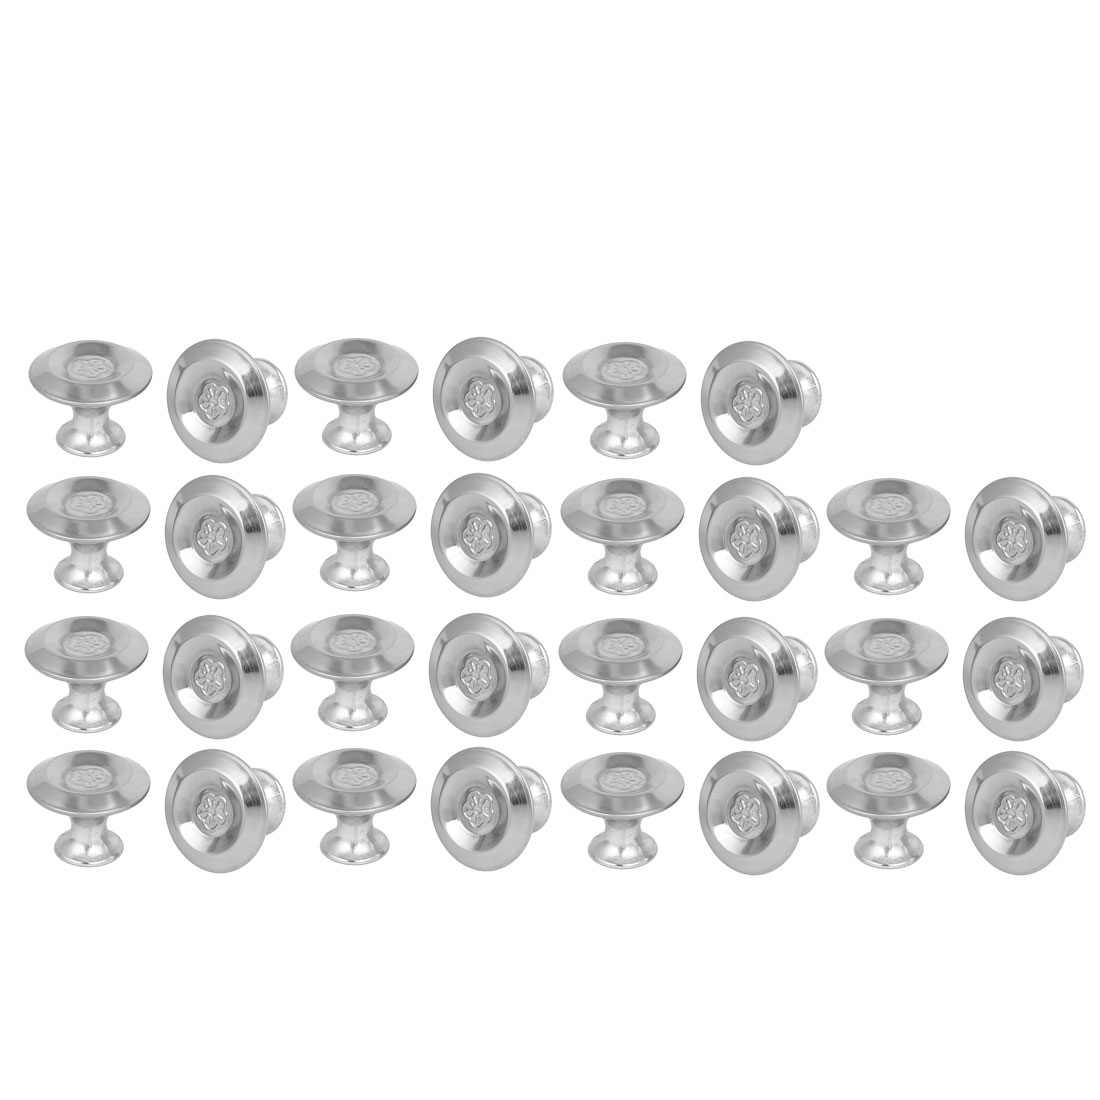 Cabinet Drawer Metal Single Hole Flower Pattern Pull Knobs 24mmx19mm 30pcs